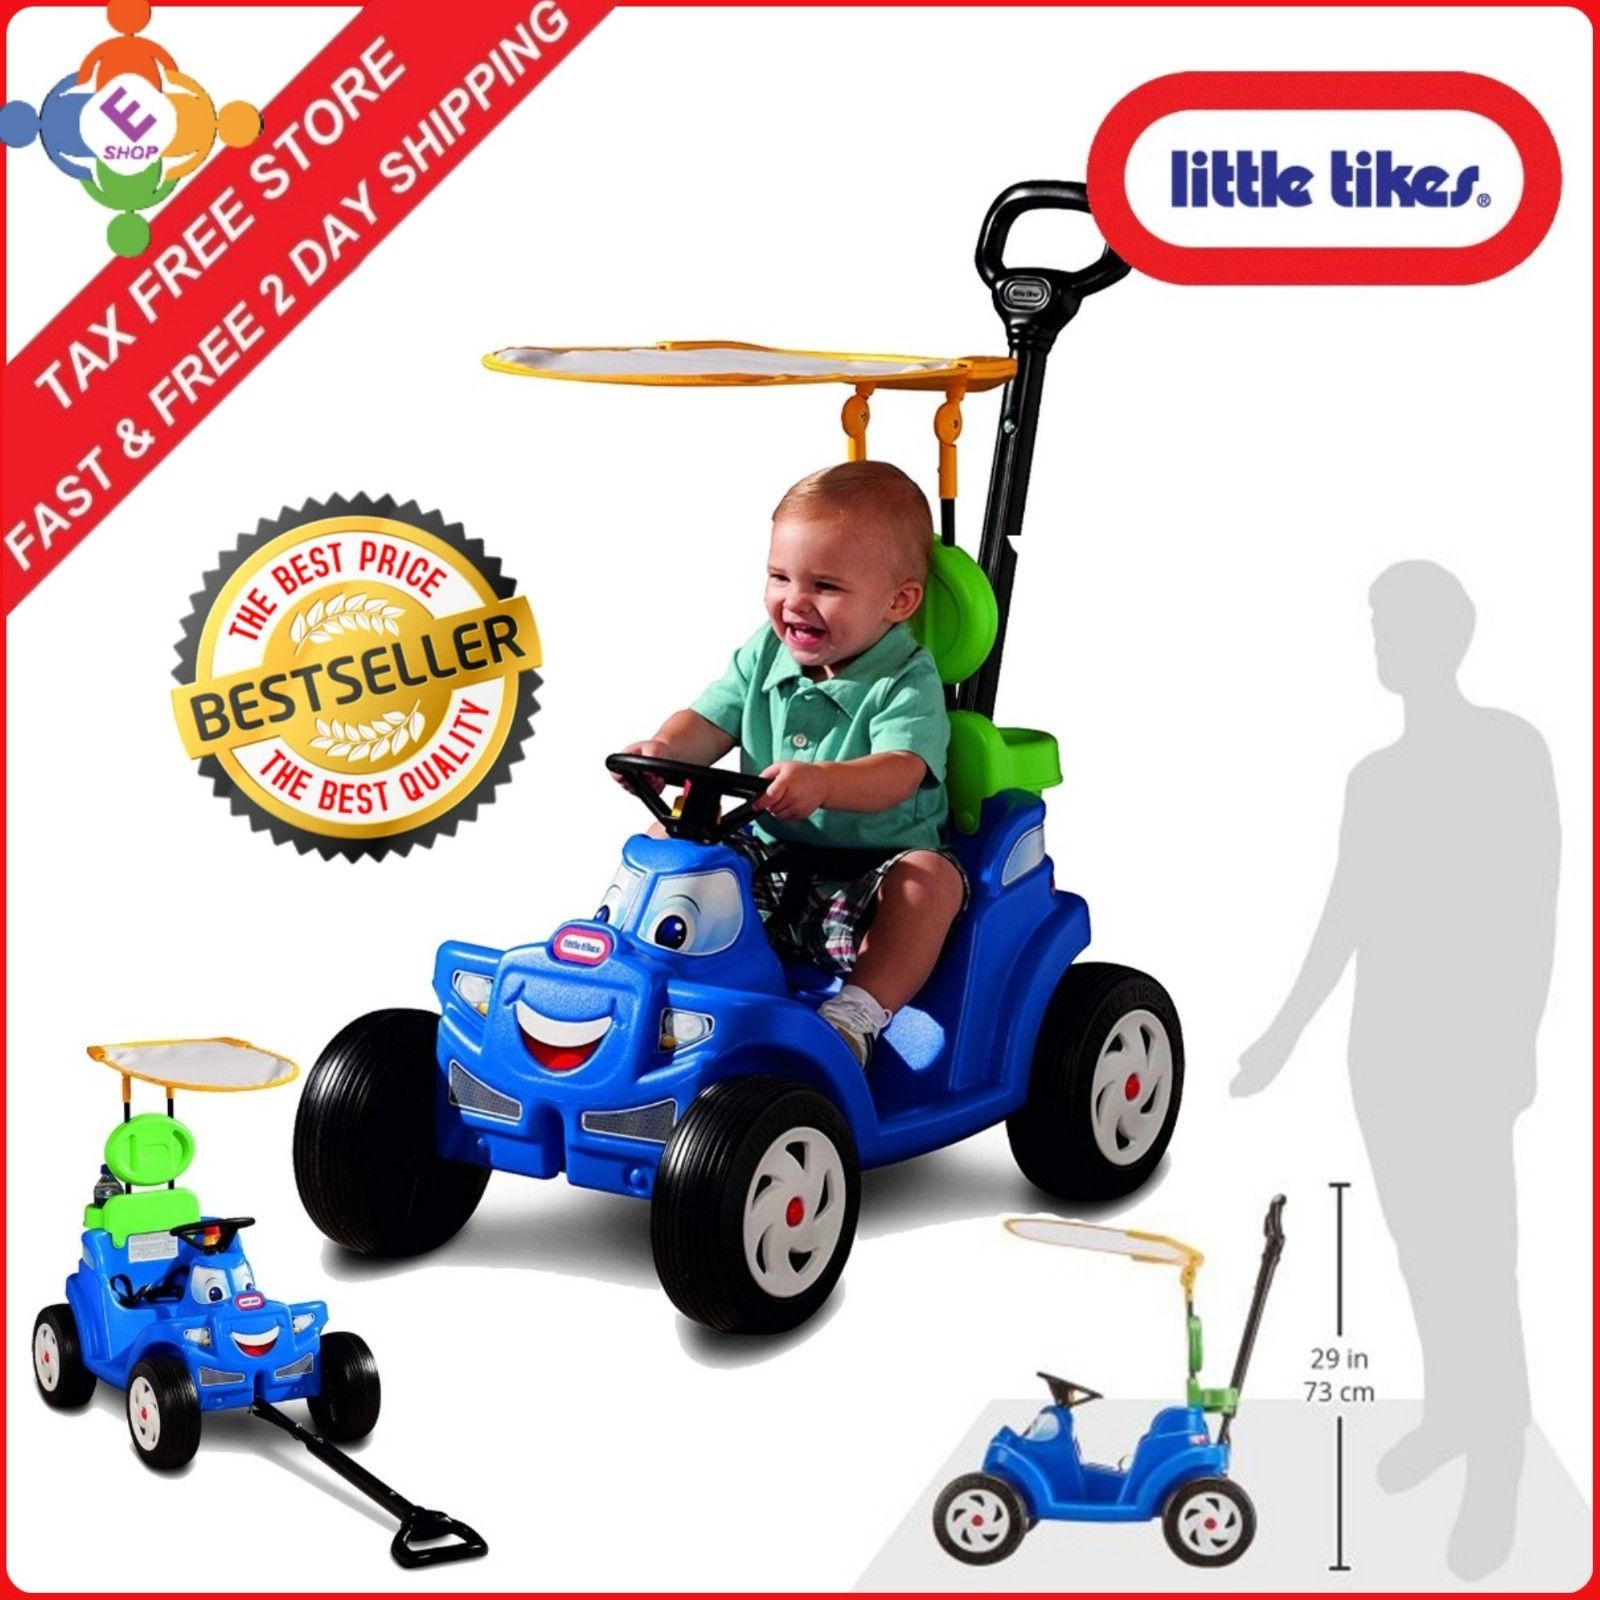 bd80e836877 Details about Ride On Toys For Girls Boys Toddlers Riding 1-4 Year Old  Gifts Baby 2-in-1 Cozy